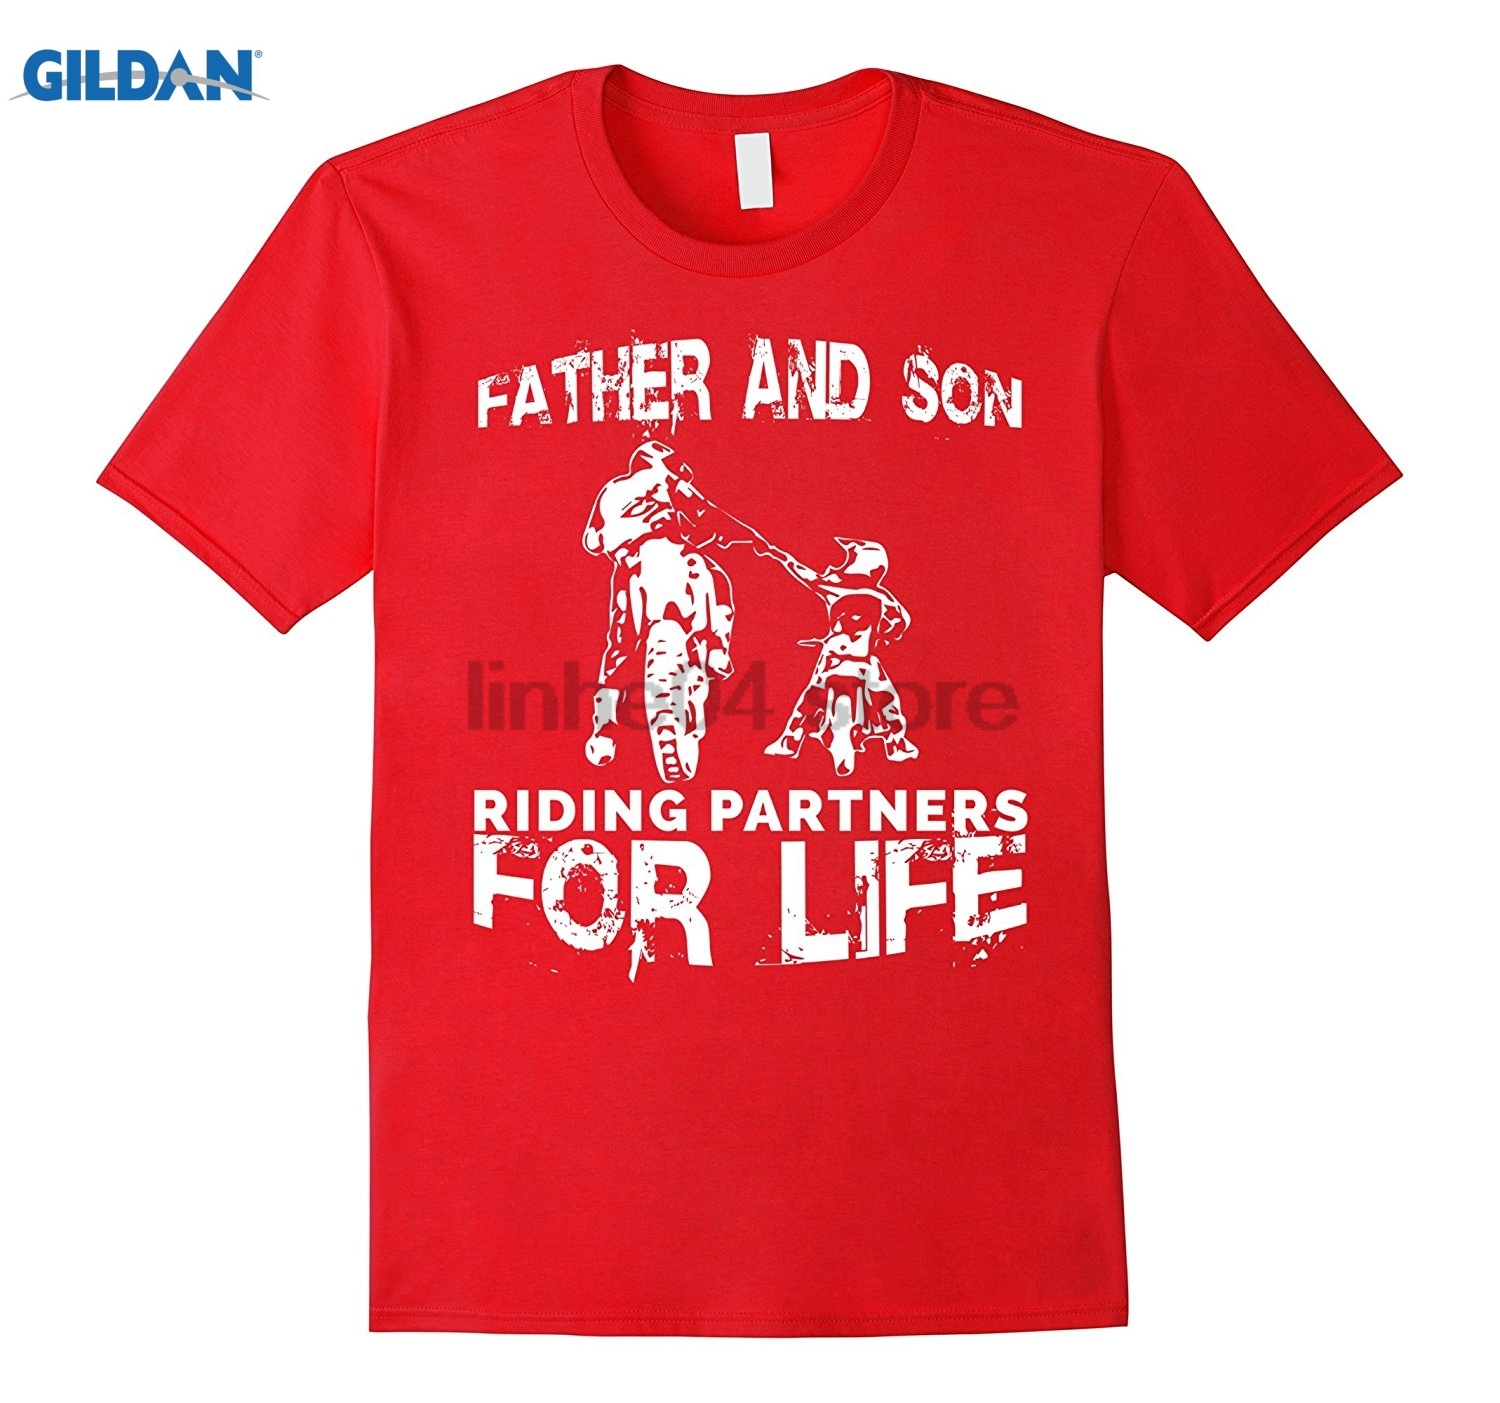 GILDAN Father And Son Riding Partners For Life T-shirt Dads Sons Mothers Day Ms. T-shirt